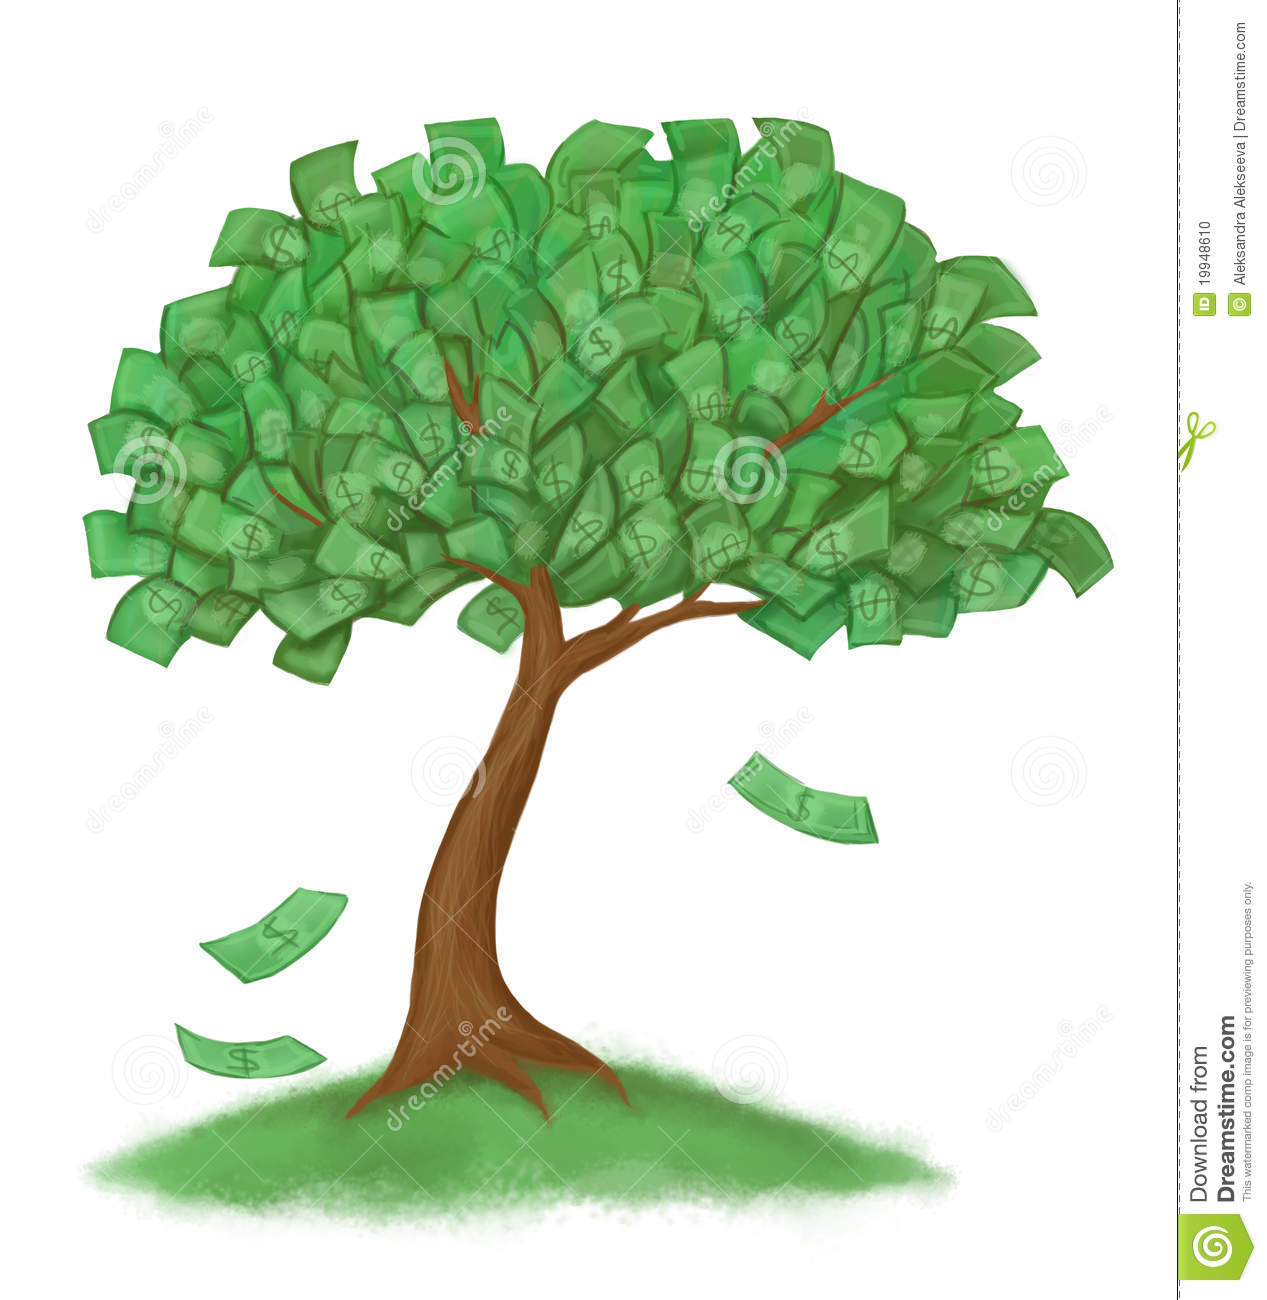 Money clipart money tree Images Tree Money Clipart Collection